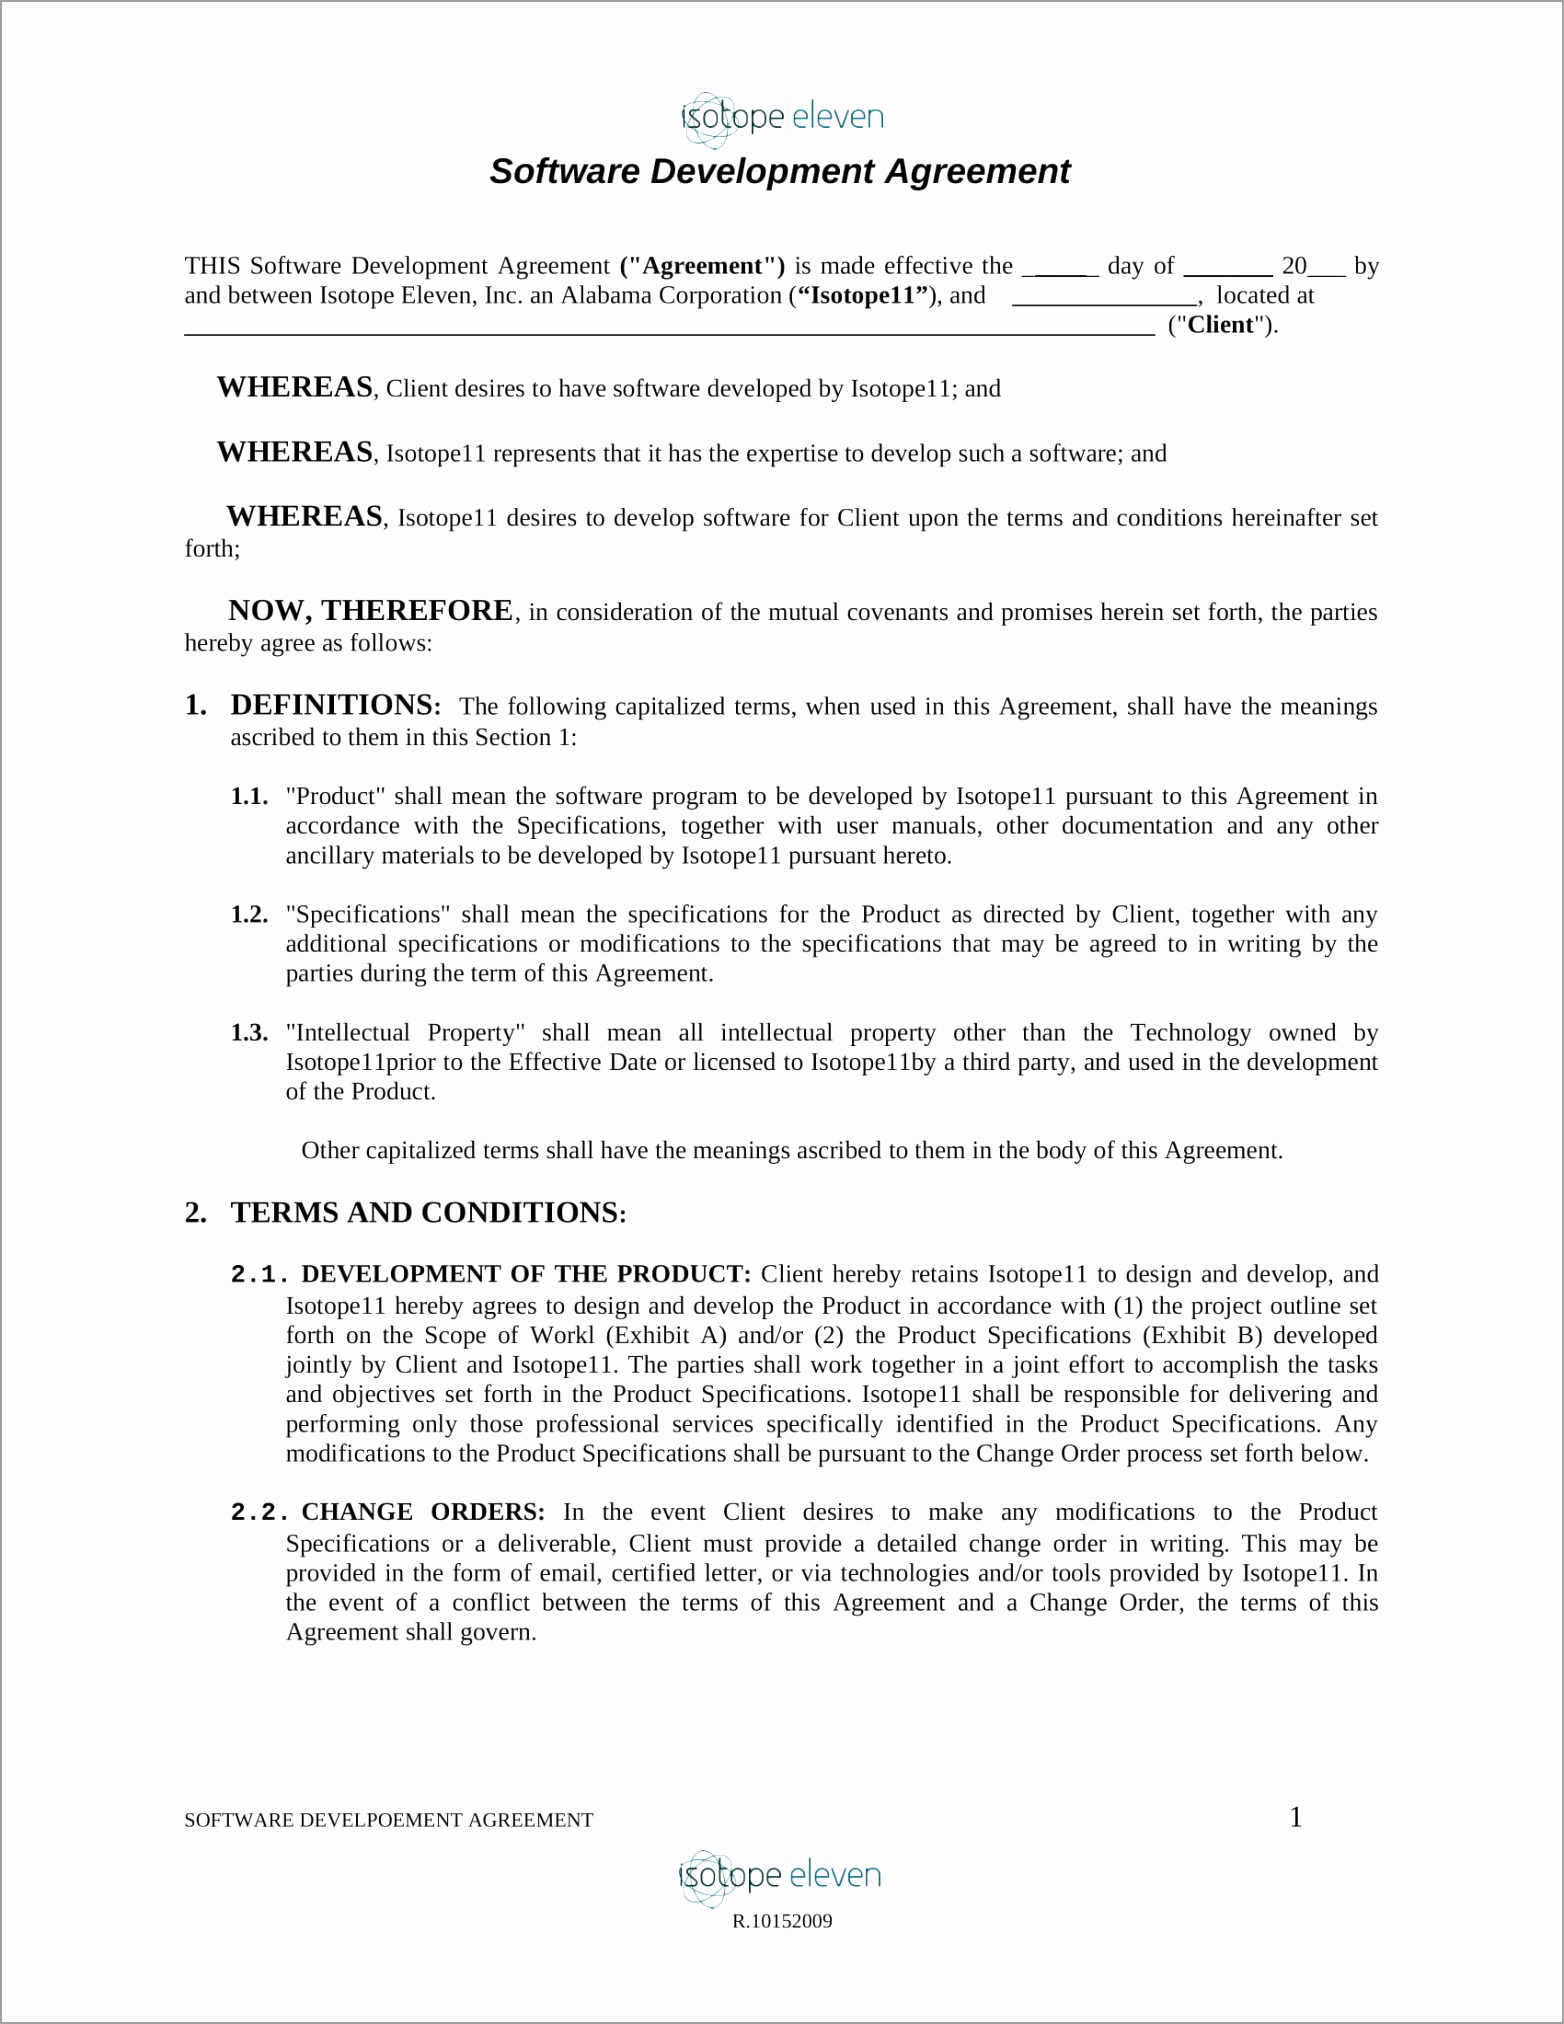 Software Development Agreement Contract Form 1 owuat